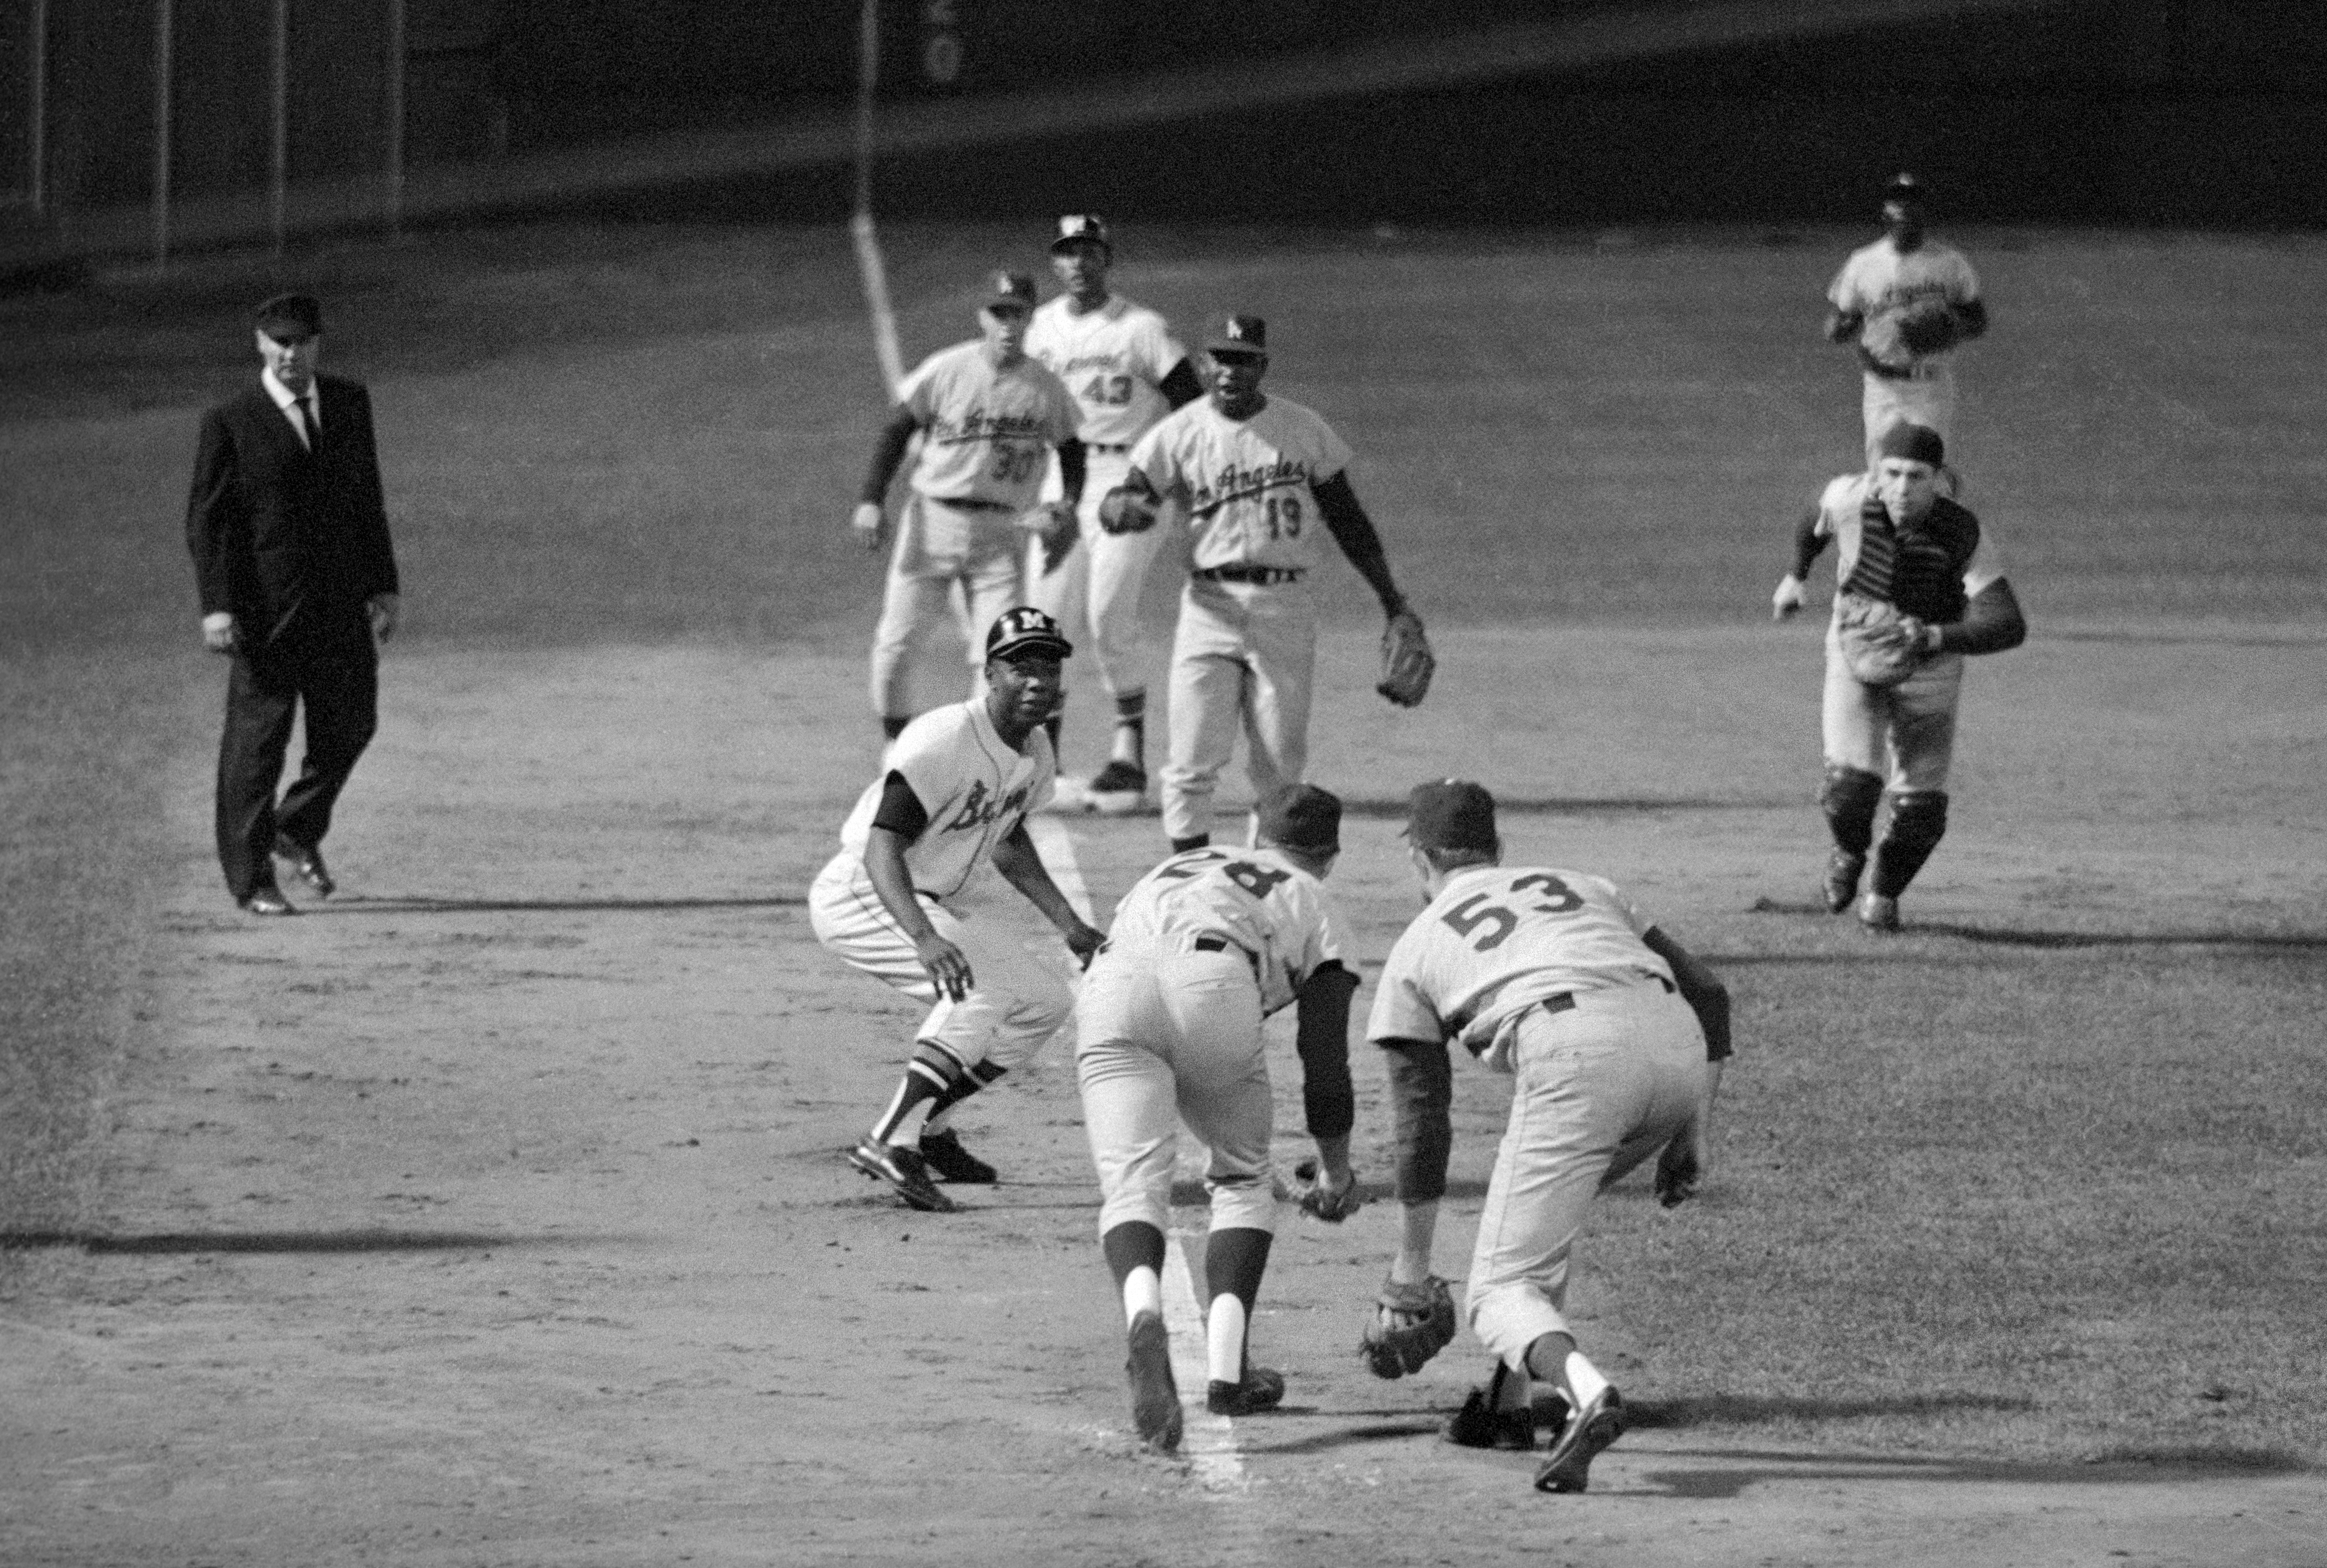 Hank Aaron Caught in The Middle